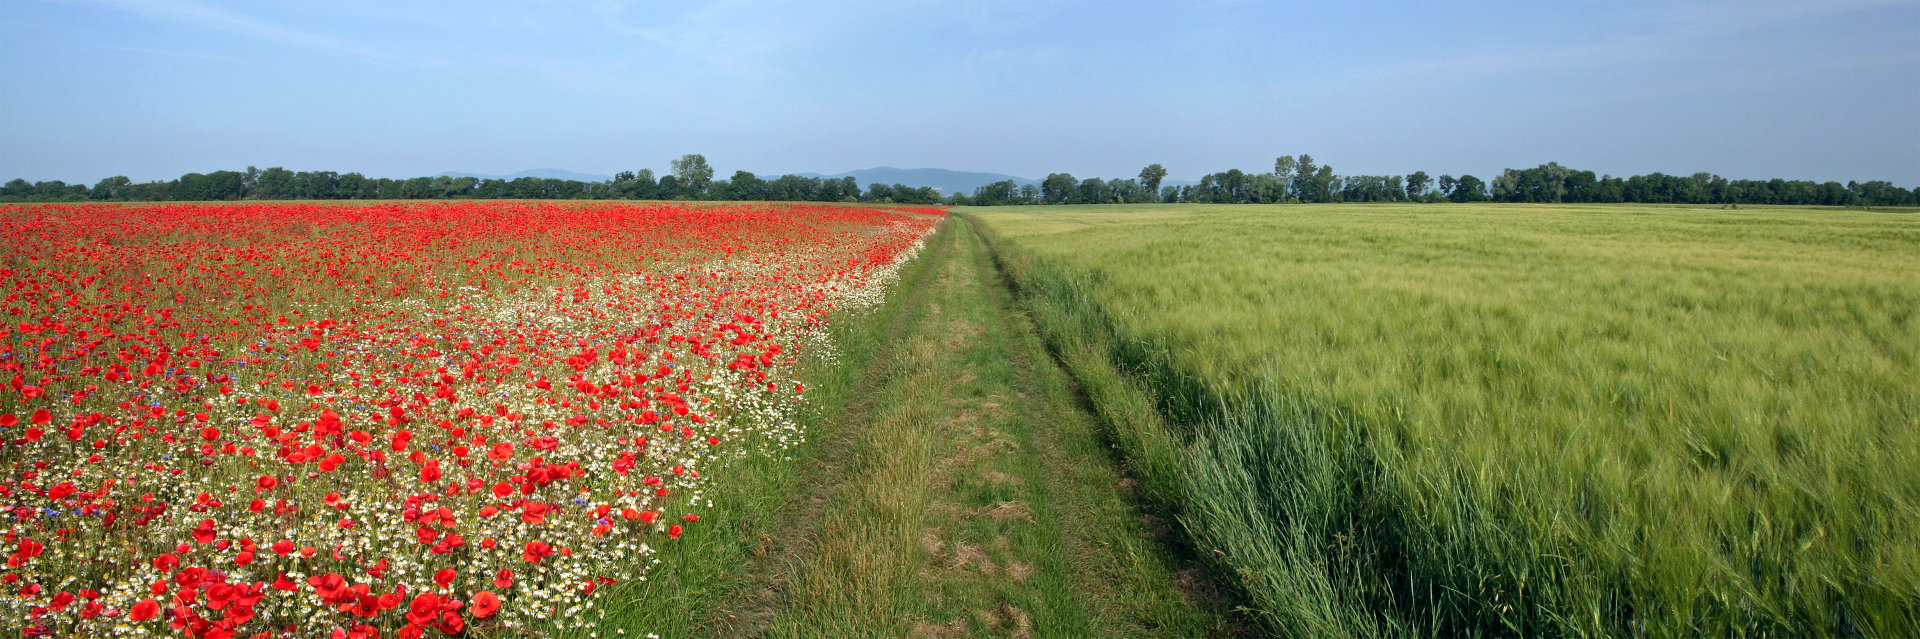 POPPY FIELD 3 © Richard Kittenberger | Dreamstime.com